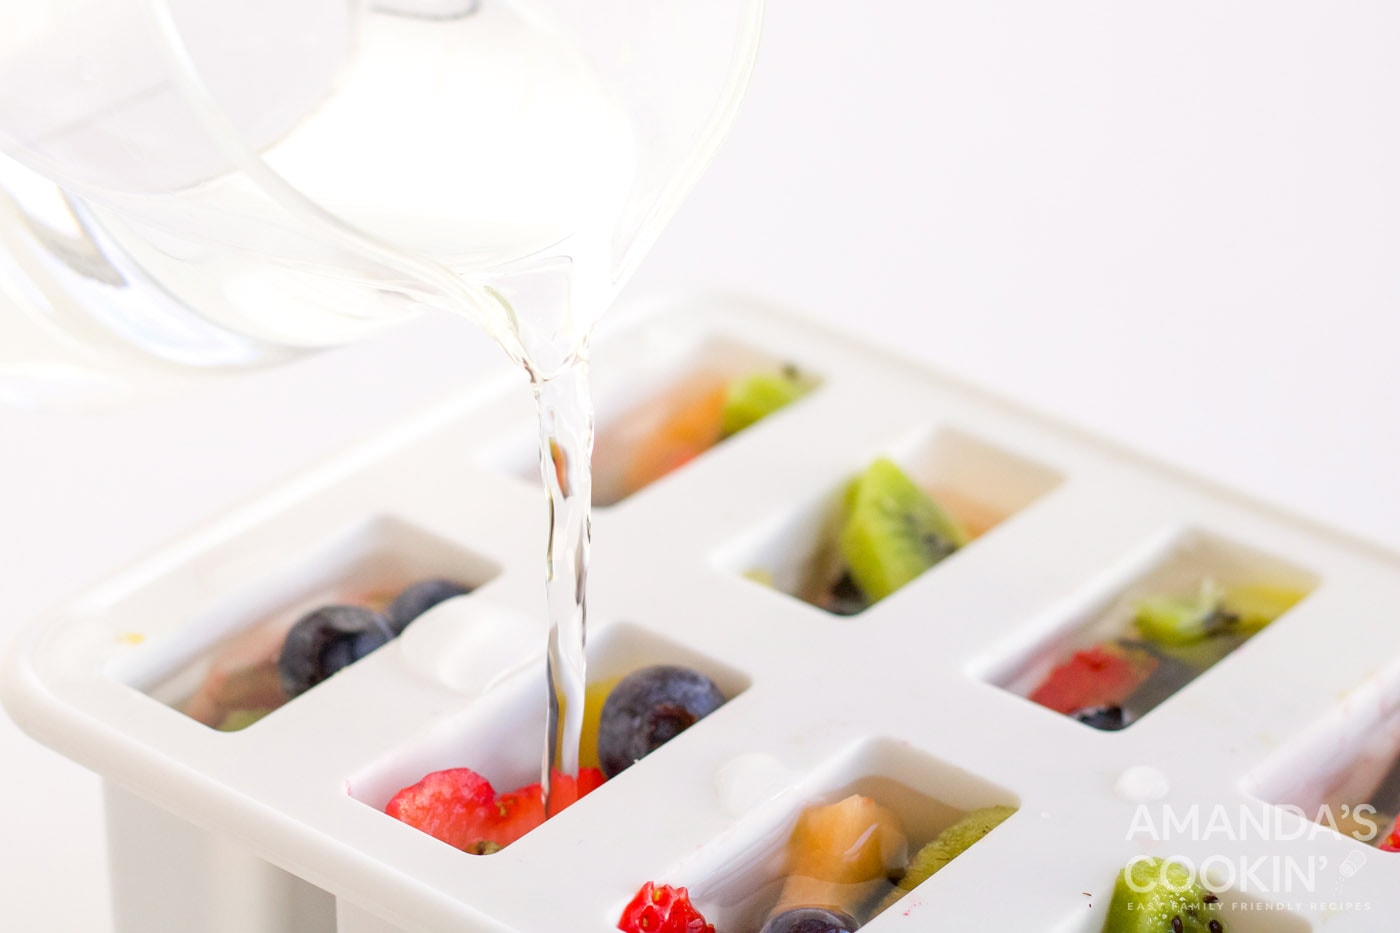 pouring white juice over fruit in popsicle mold